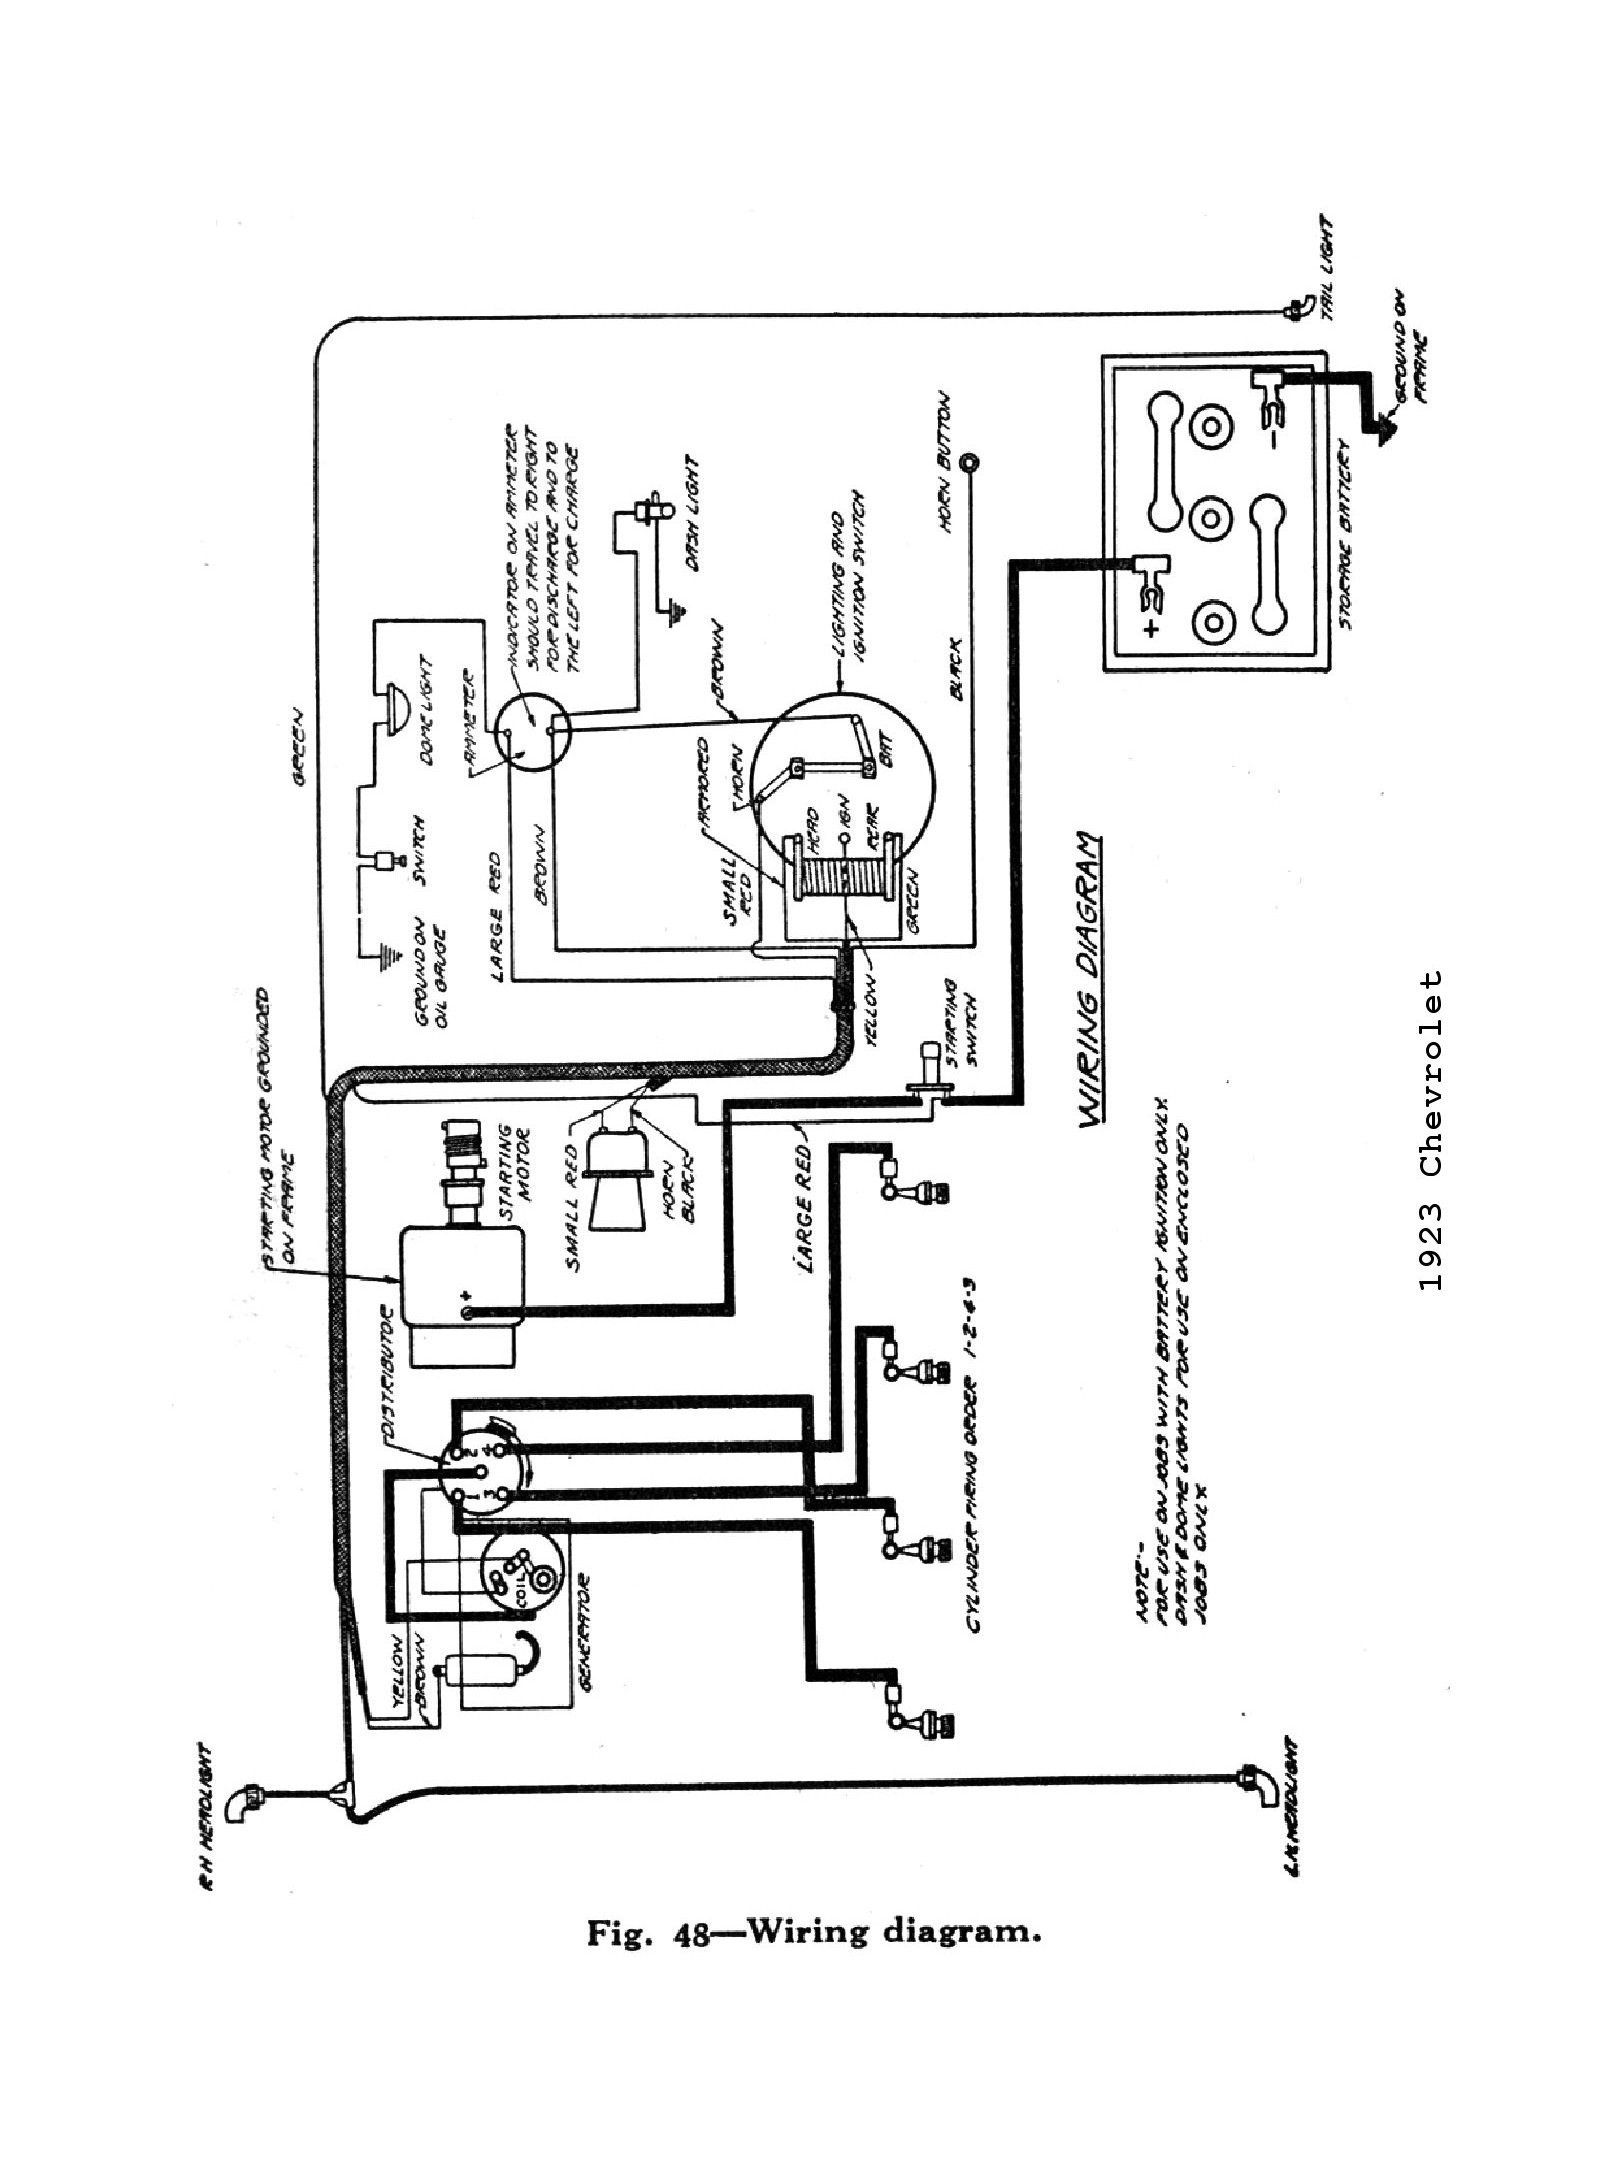 hight resolution of 1949 packard wiring diagram wiring diagram centre